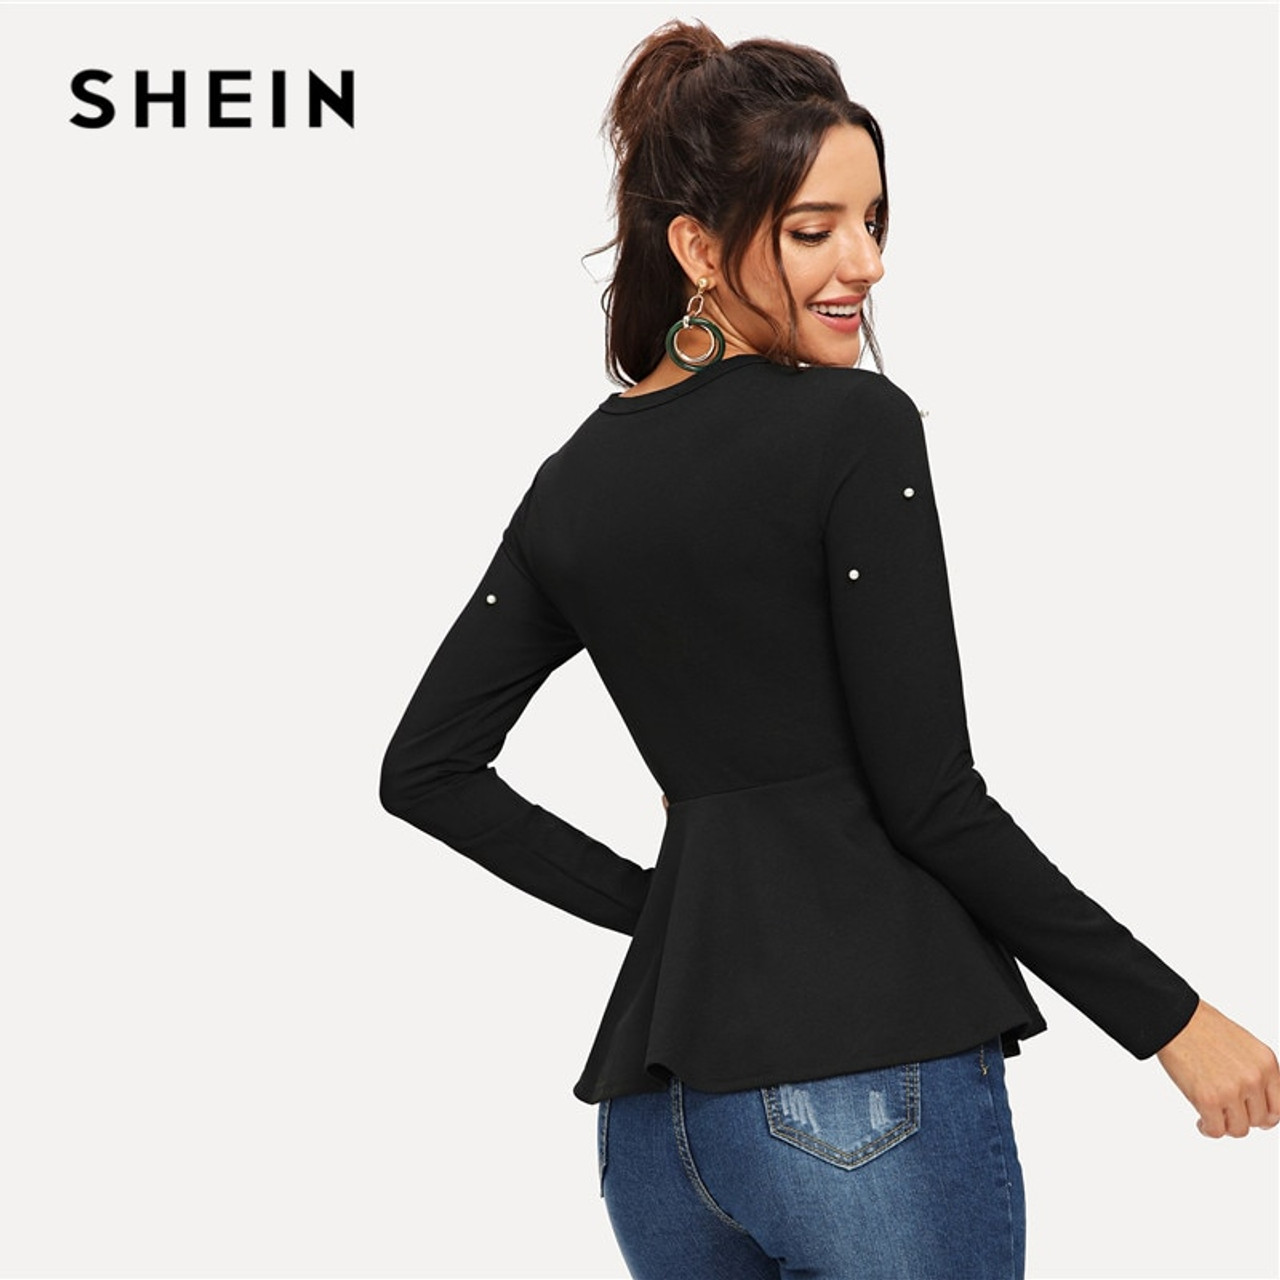 78f99a89b4 ... SHEIN Black Pearls Beaded Solid Peplum Top Elegant Round Neck Long  Sleeve Flared Blouses Women Autumn ...